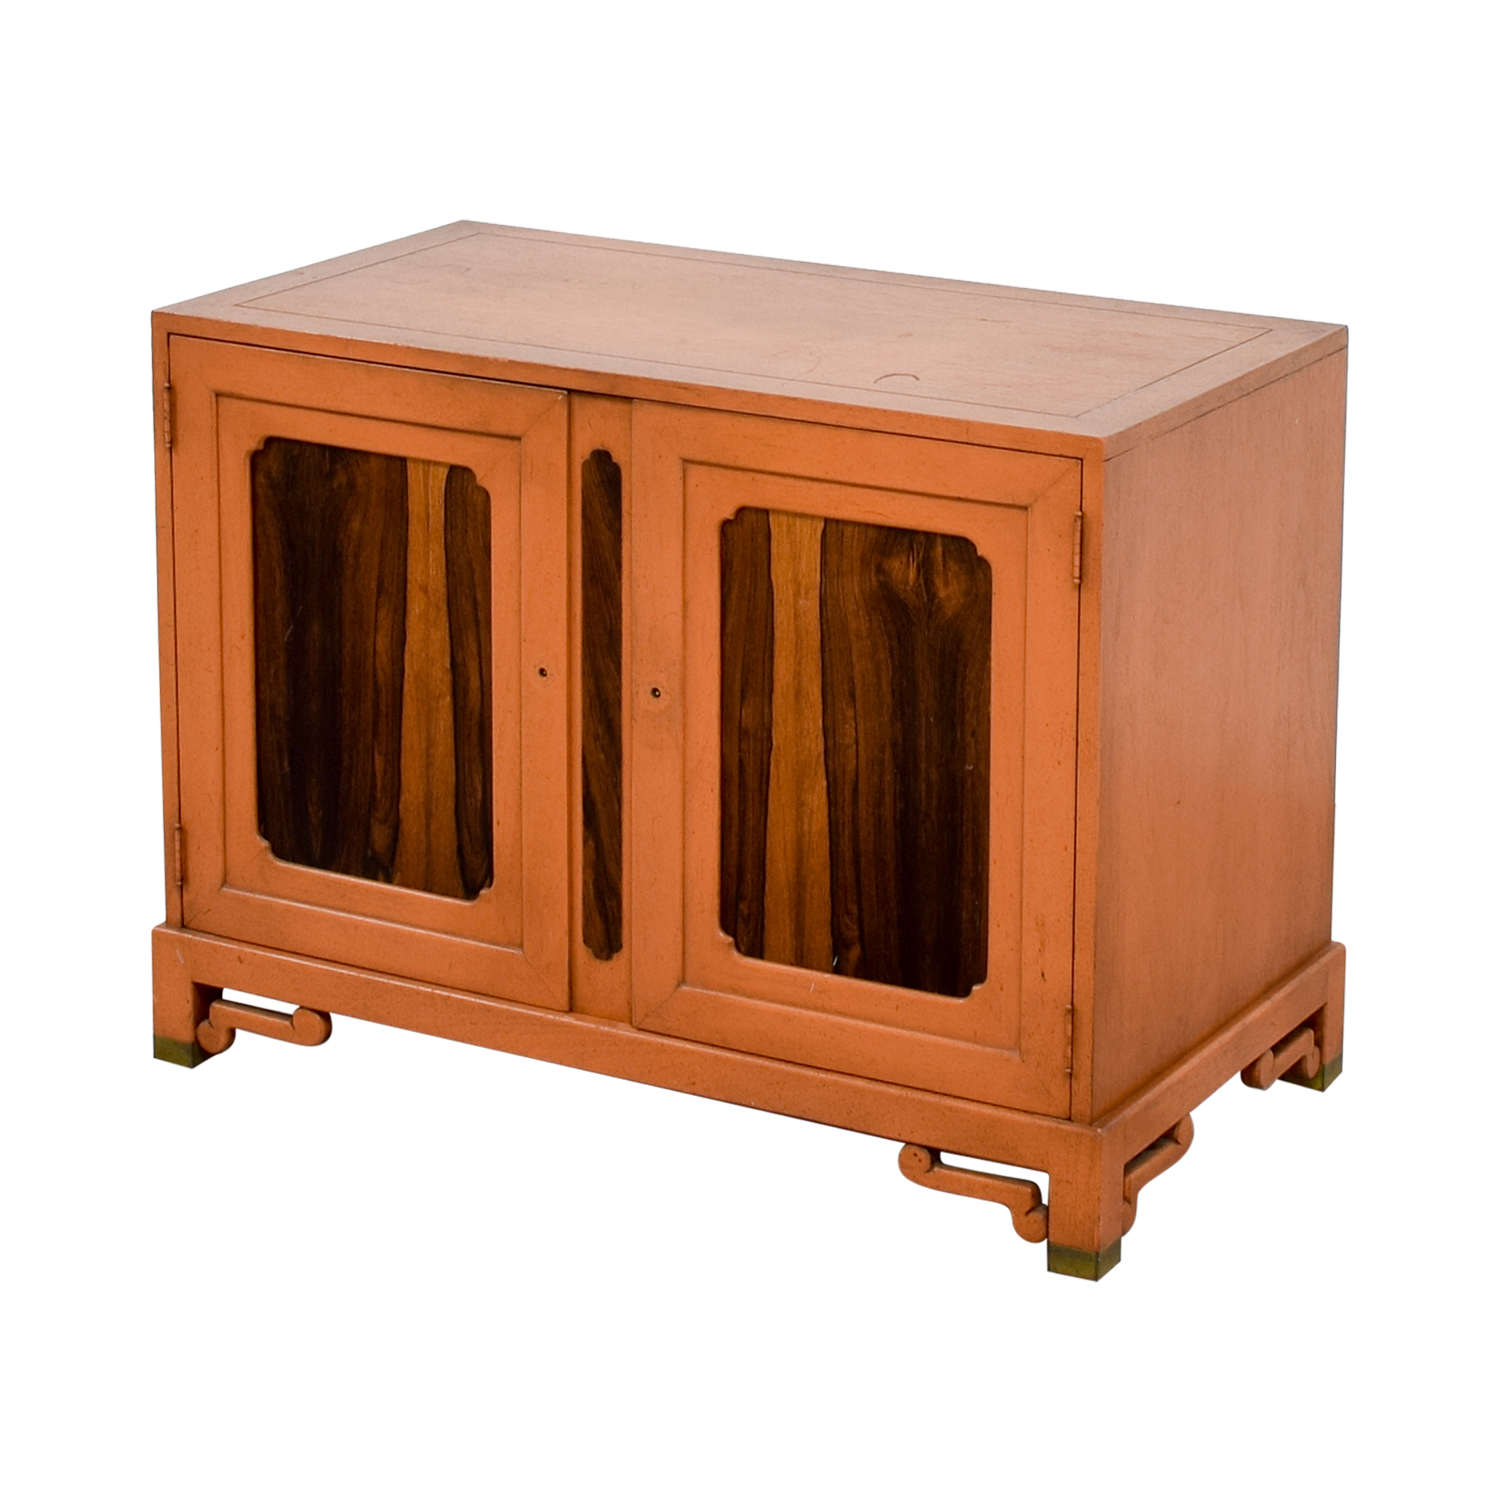 Unknown Wood Cabinet with Two Shelves Storage